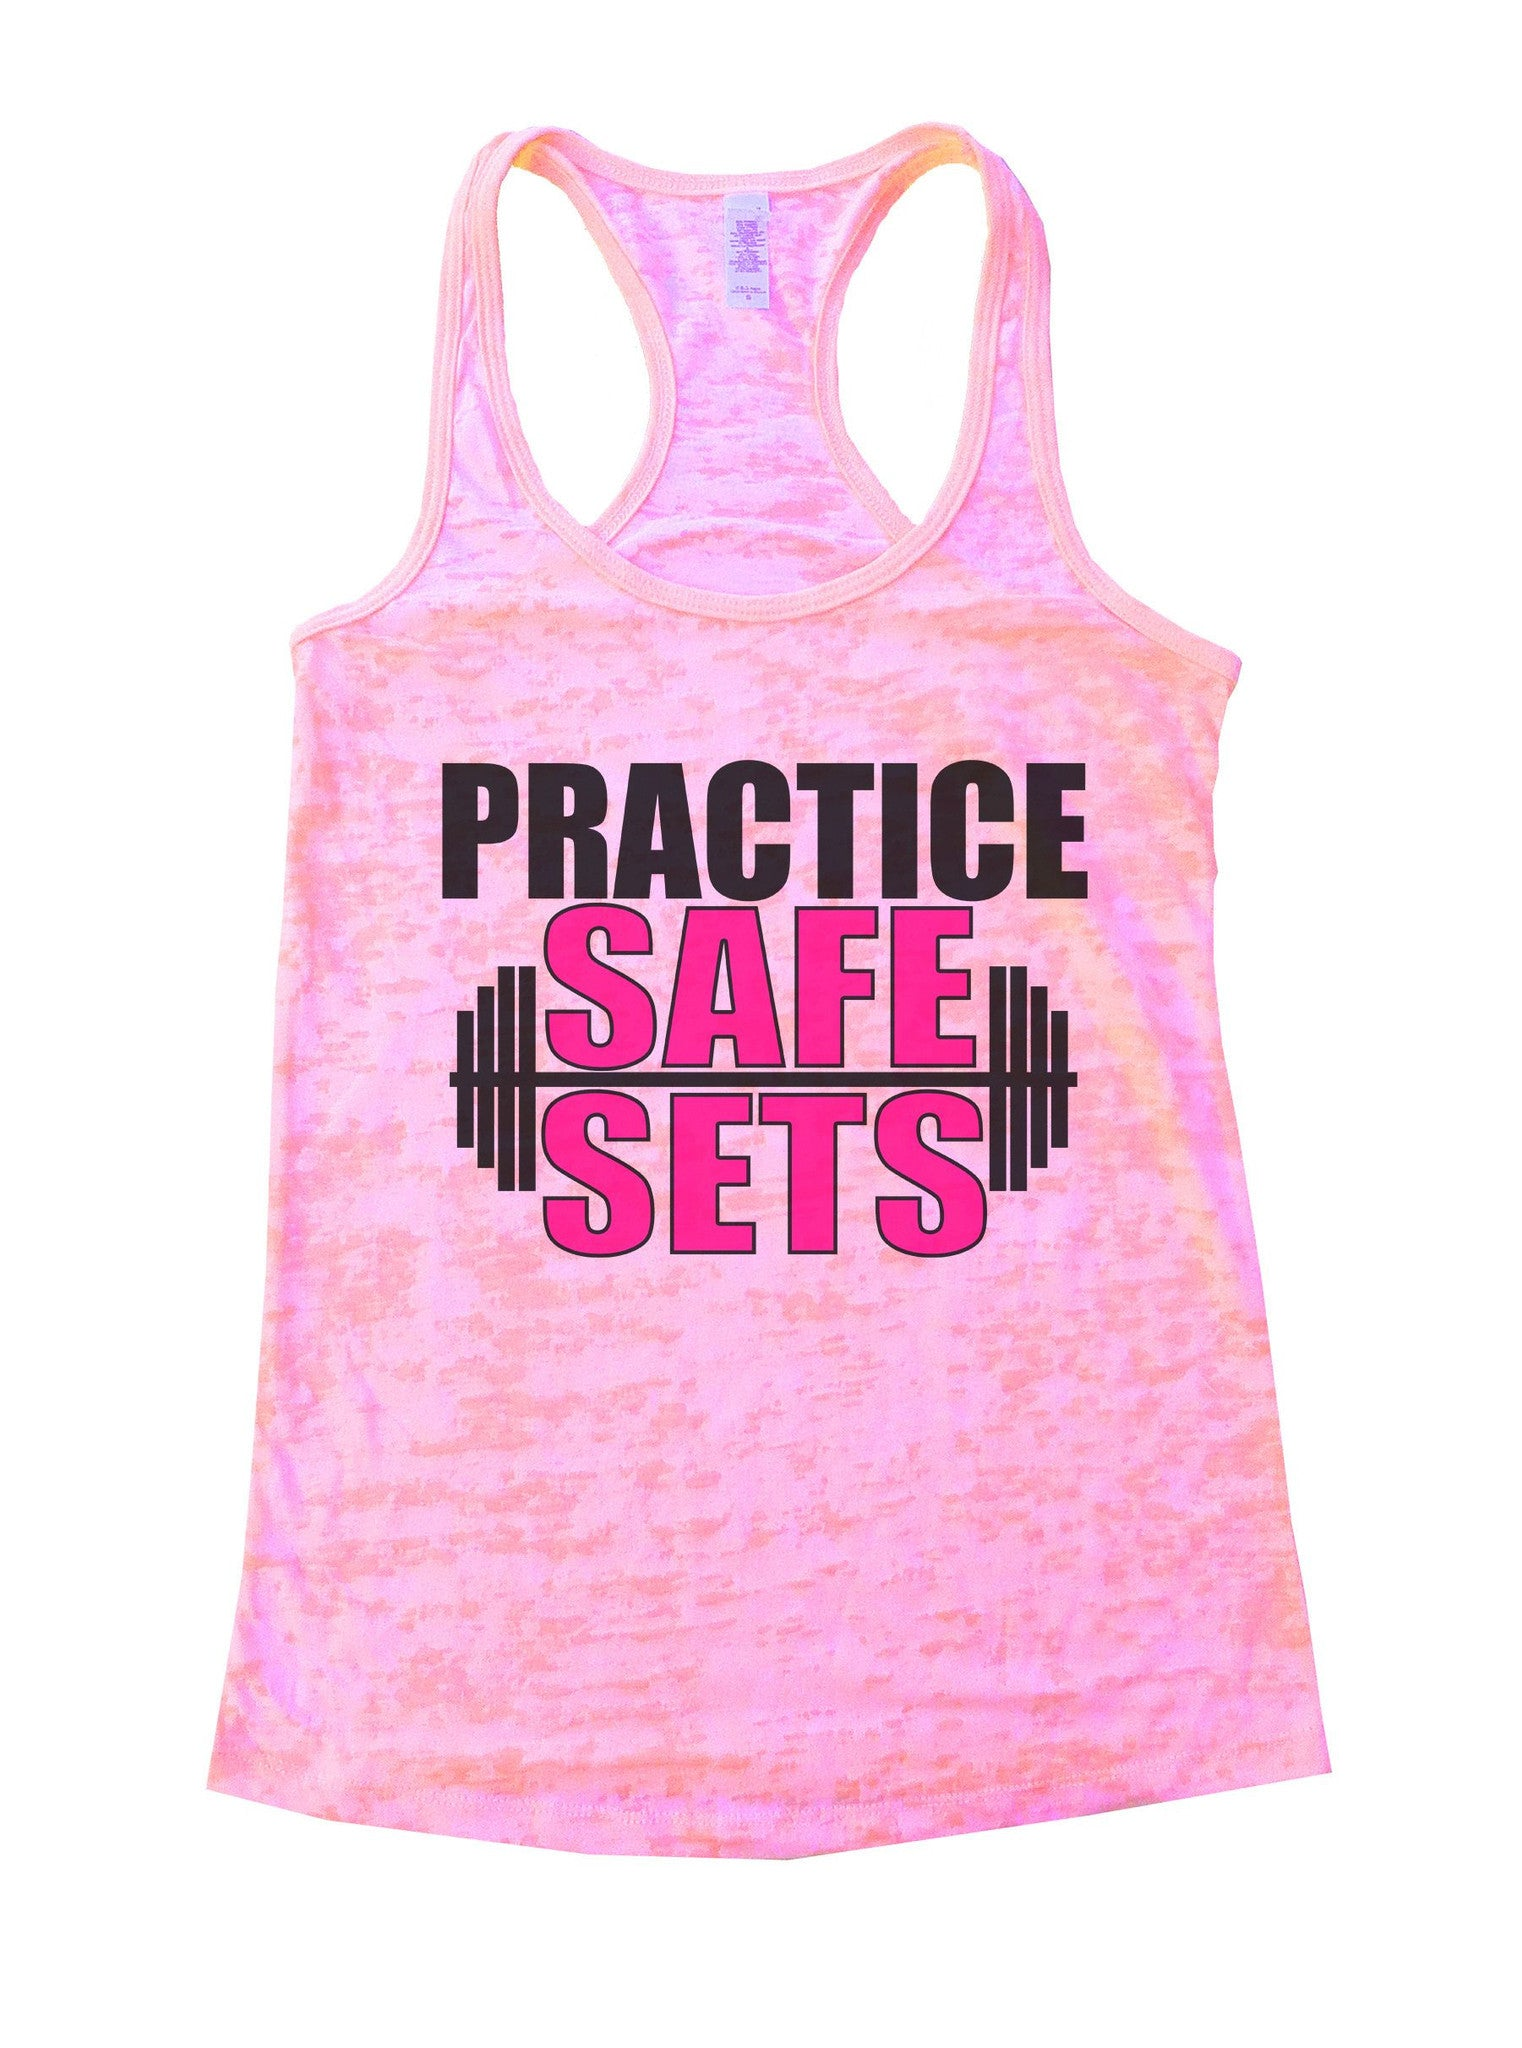 Practice Safe Sets Burnout Tank Top By BurnoutTankTops.com - 1124 - Funny Shirts Tank Tops Burnouts and Triblends  - 3